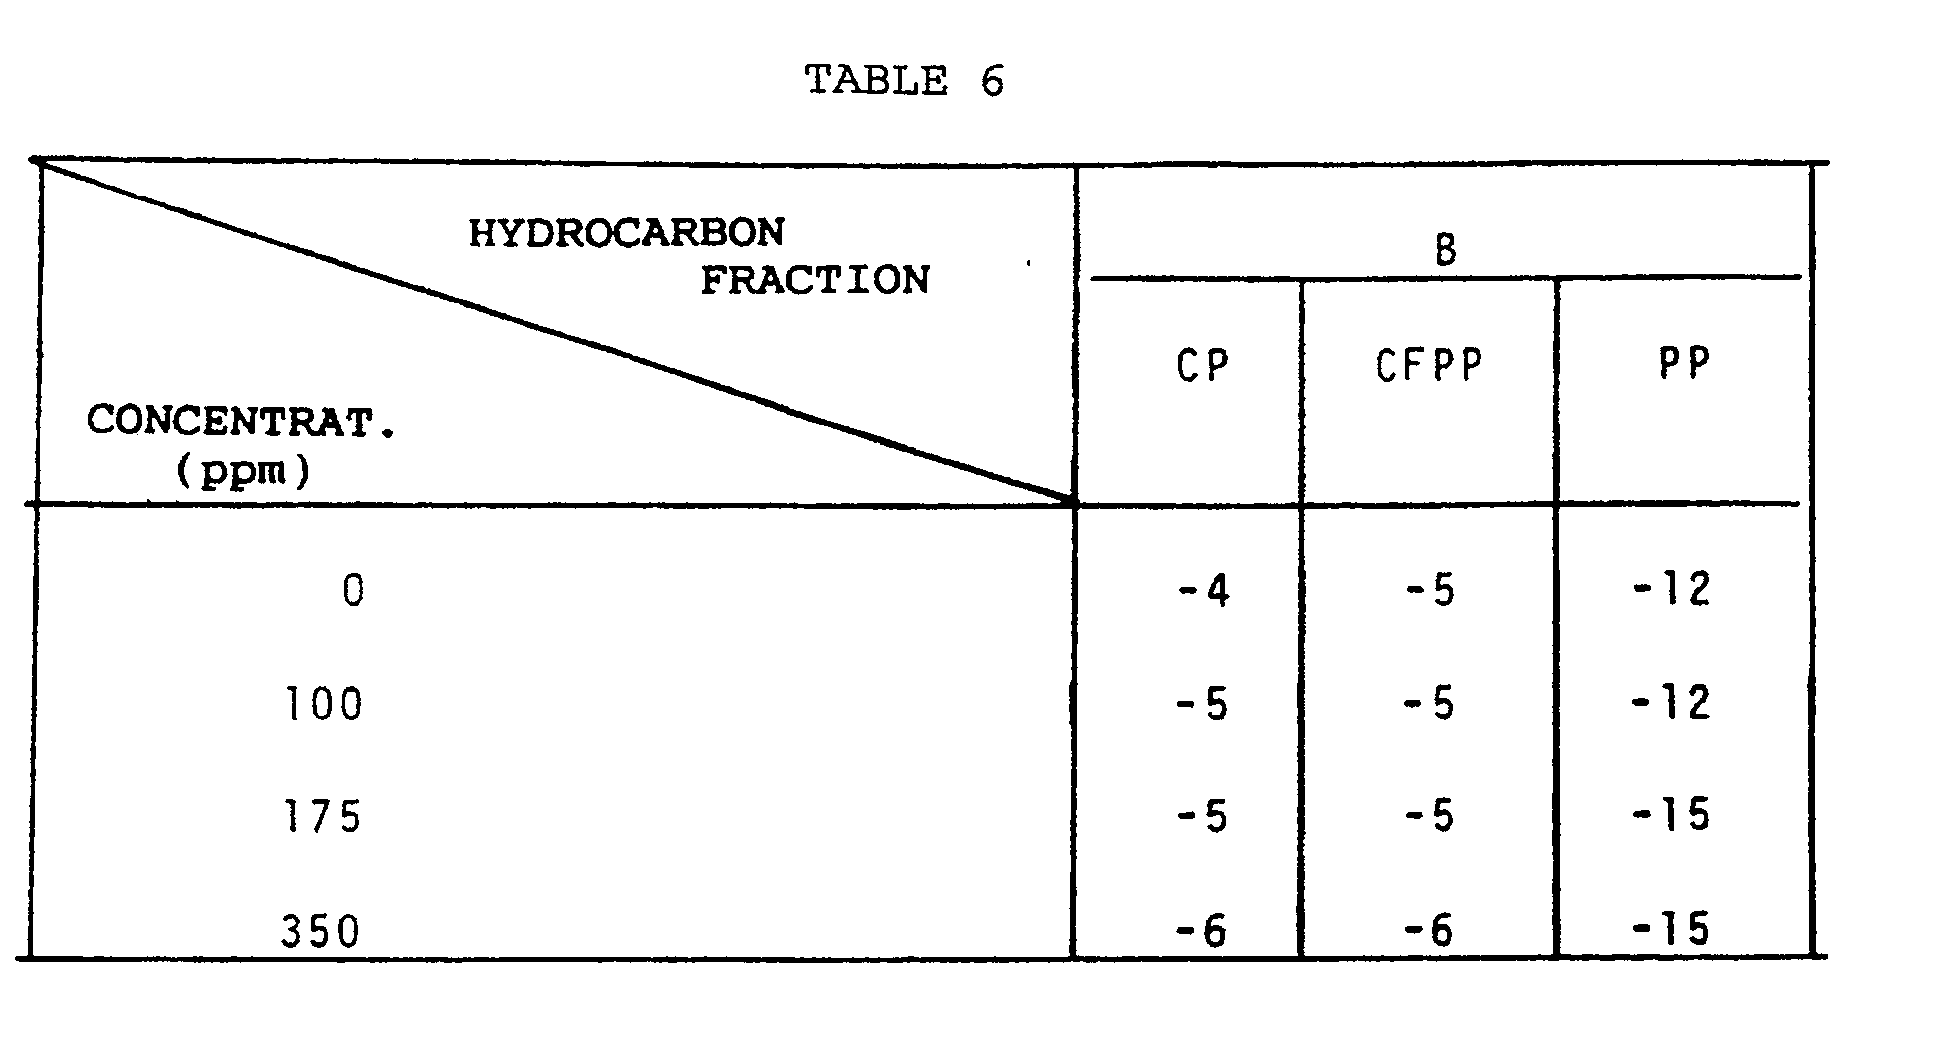 Ep0461554a1 Compositions Of Refinery Hydrocarbons Having Improved E7 350 Engine Diagram Figure Imgb0011